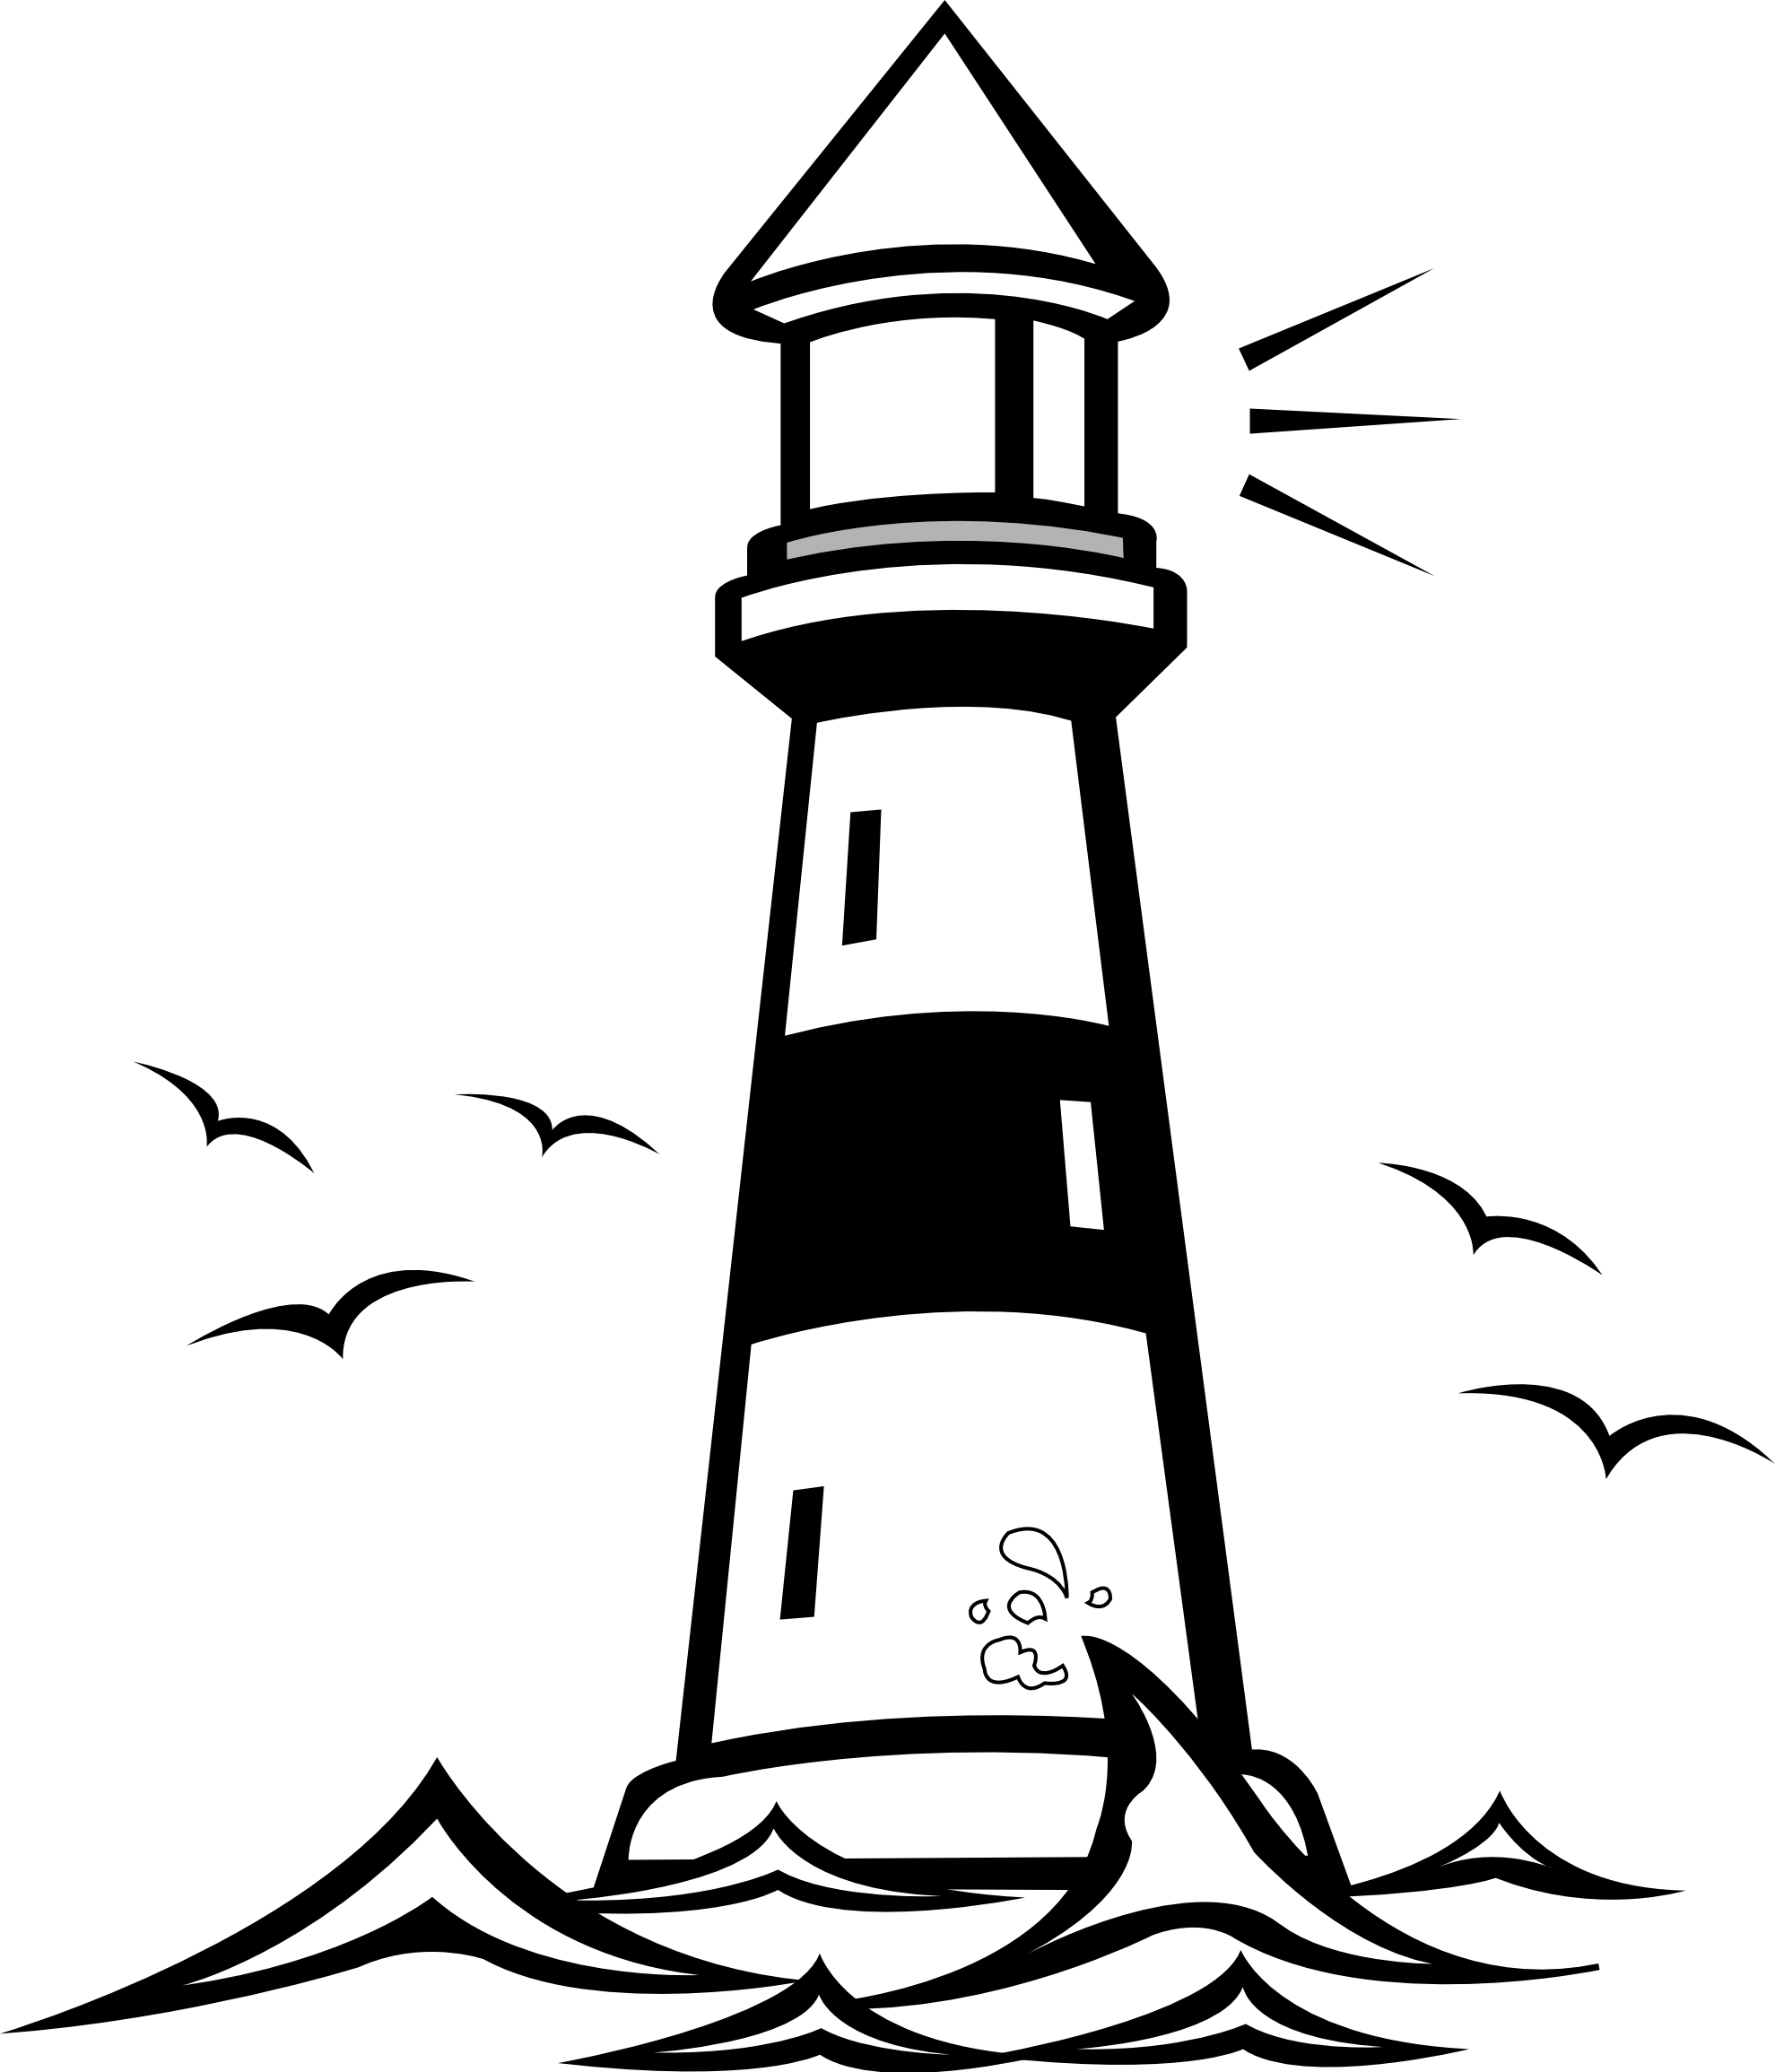 House painting clipart black and white image black and white download lighthouse clipart | Projects to Try | Pinterest | Lighthouse ... image black and white download